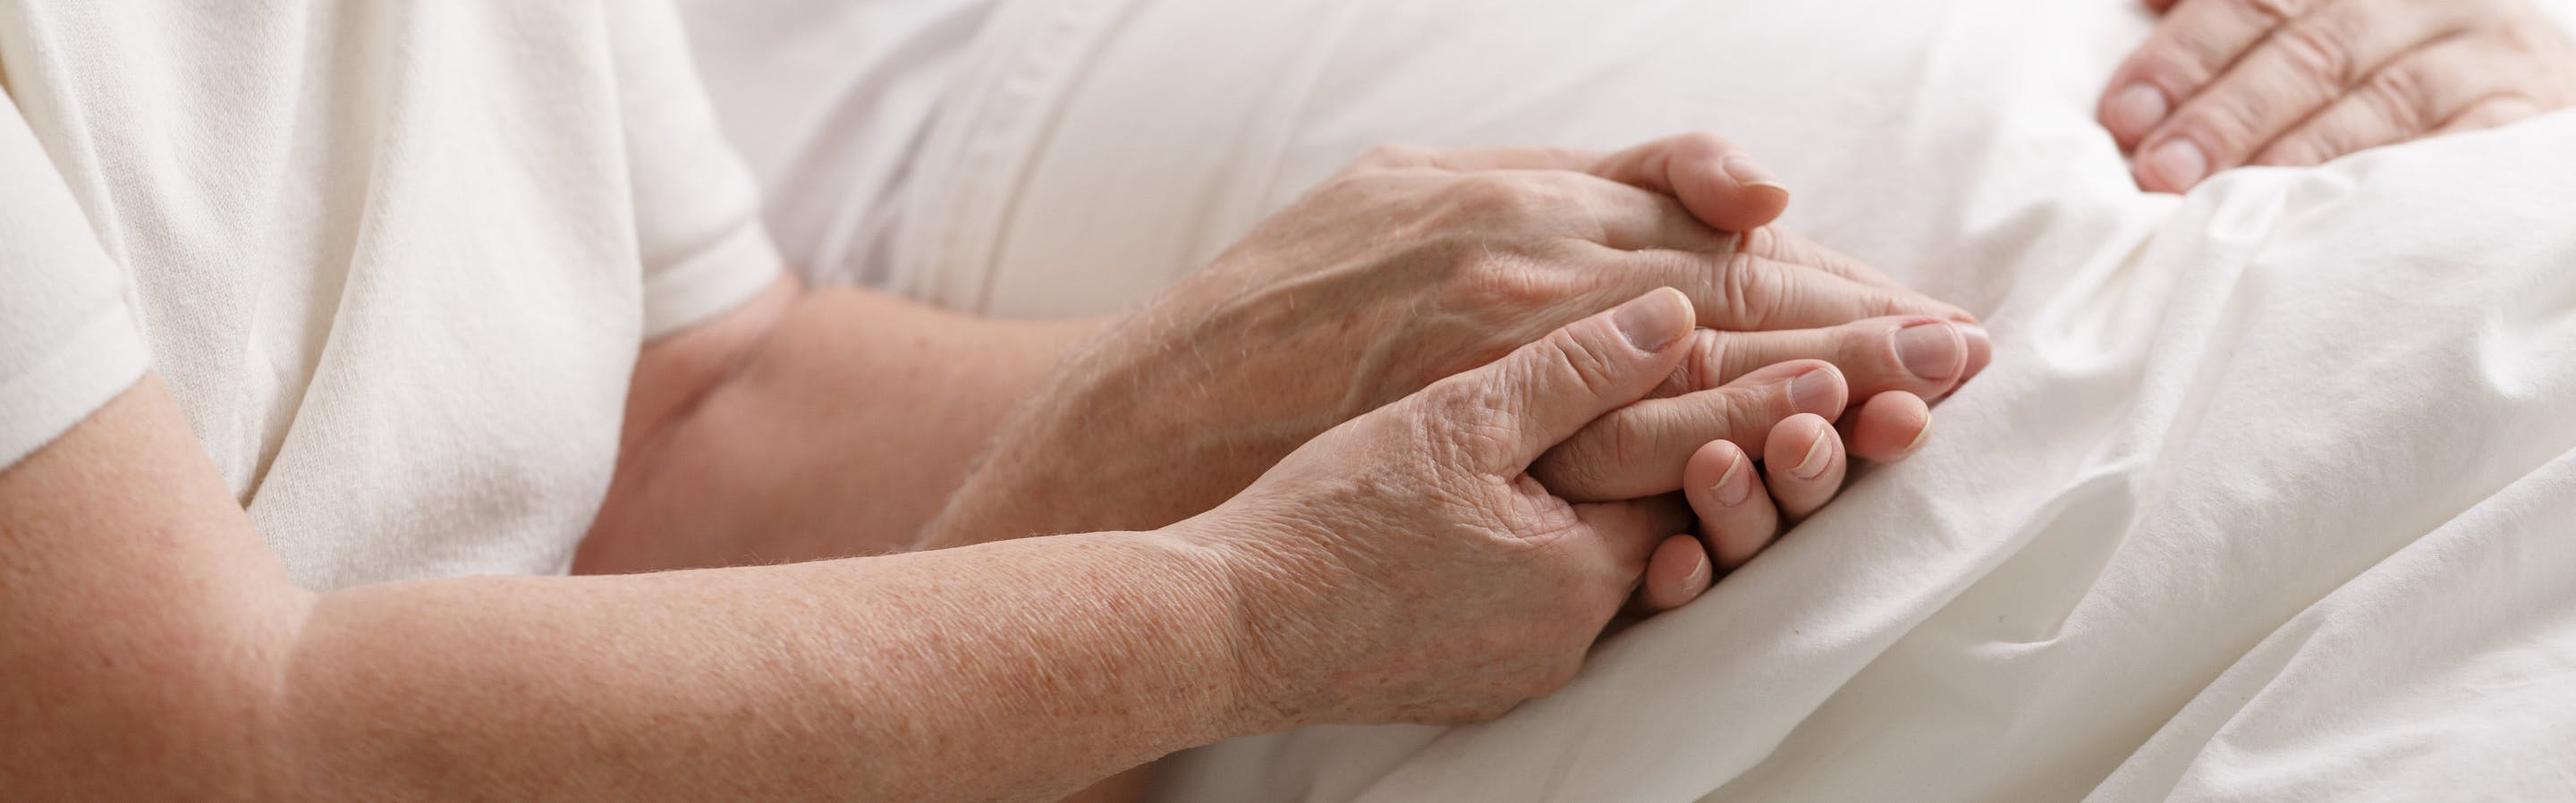 envato-elements/envato-elements-people-holding-hands-in-hospital-PDR2TGZ-gz5.jpg